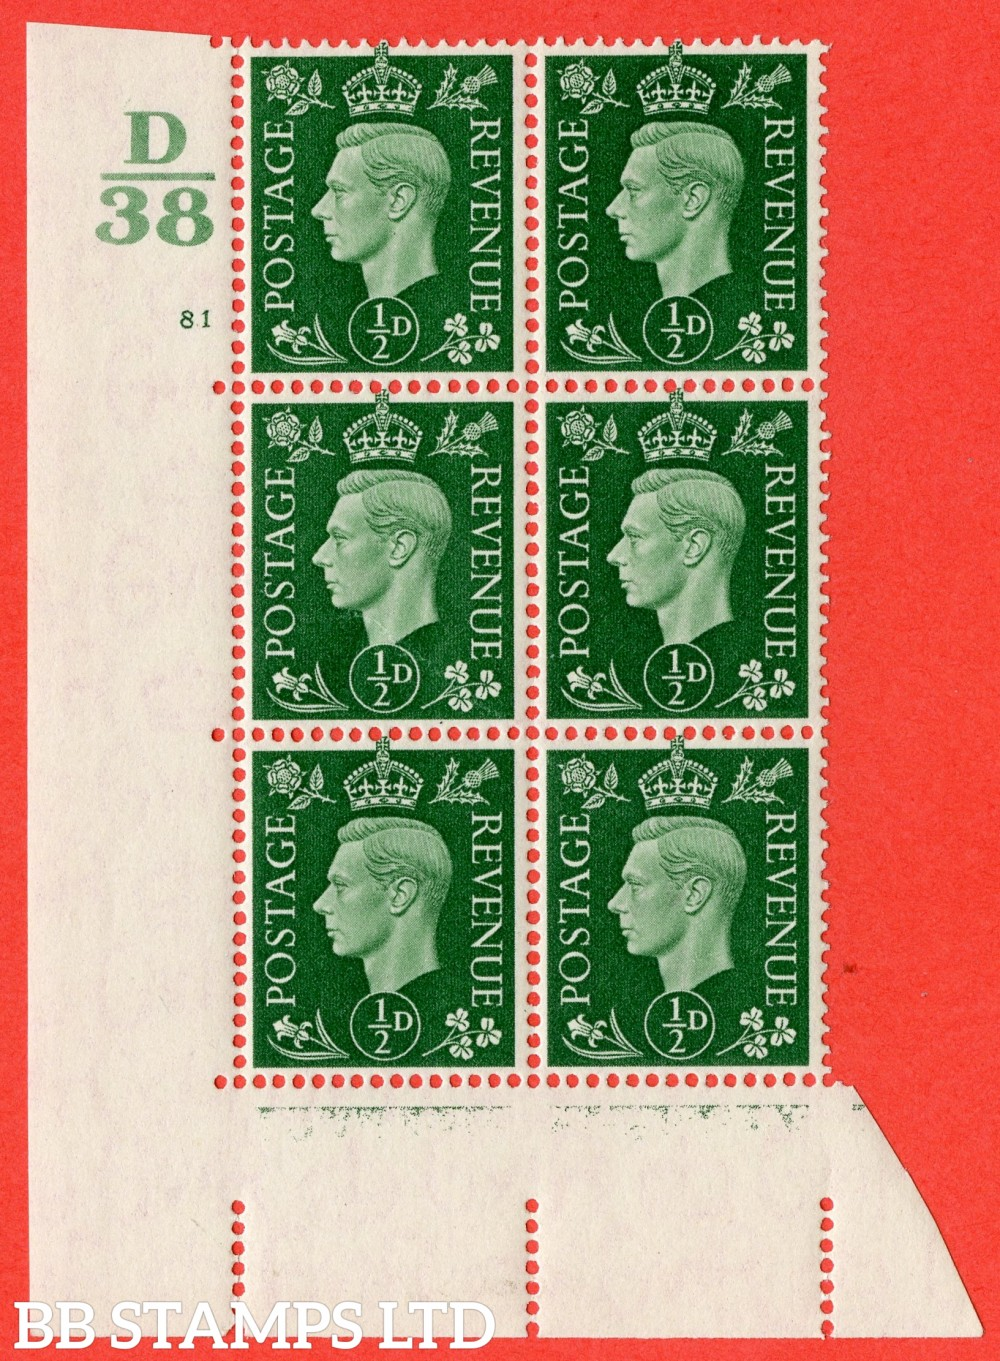 "SG. 462. Q1. ½d Green. A superb UNMOUNTED MINT "" Control D38 cylinder 81 no dot "" block of 6 with perf type 5 E/I."